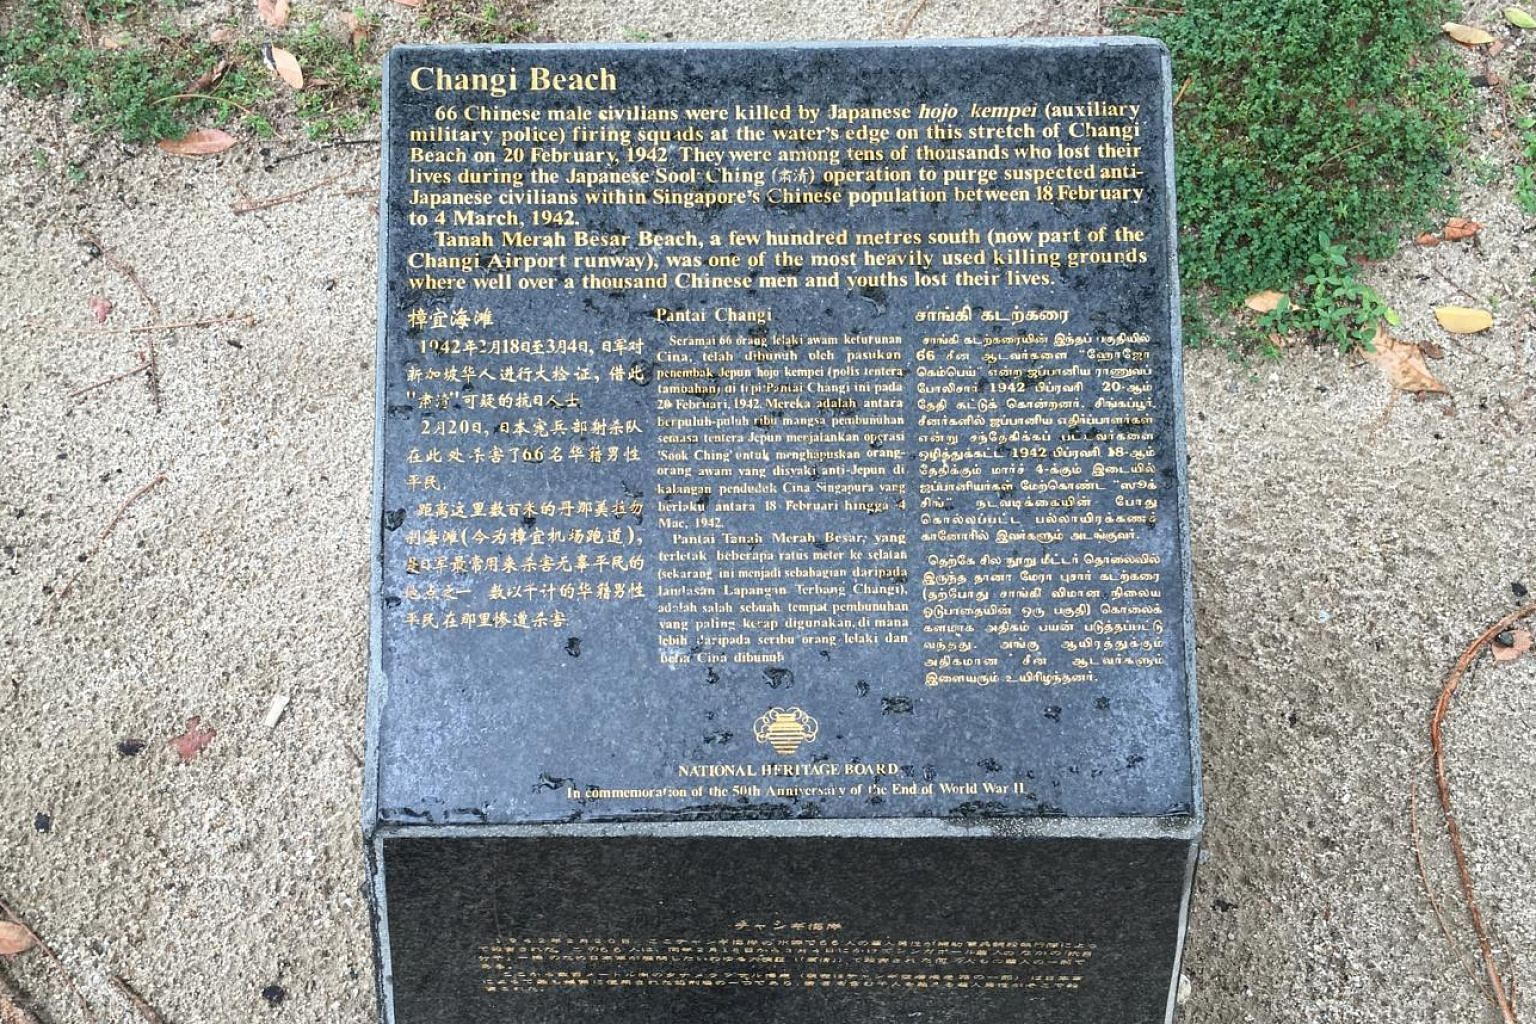 The Sook Ching monument at Changi Beach seen in a 2016 photo (left). It was erected in 1992 and carried information in all four official languages, with Japanese at the bottom. It has since been replaced by one that has information only in English (r